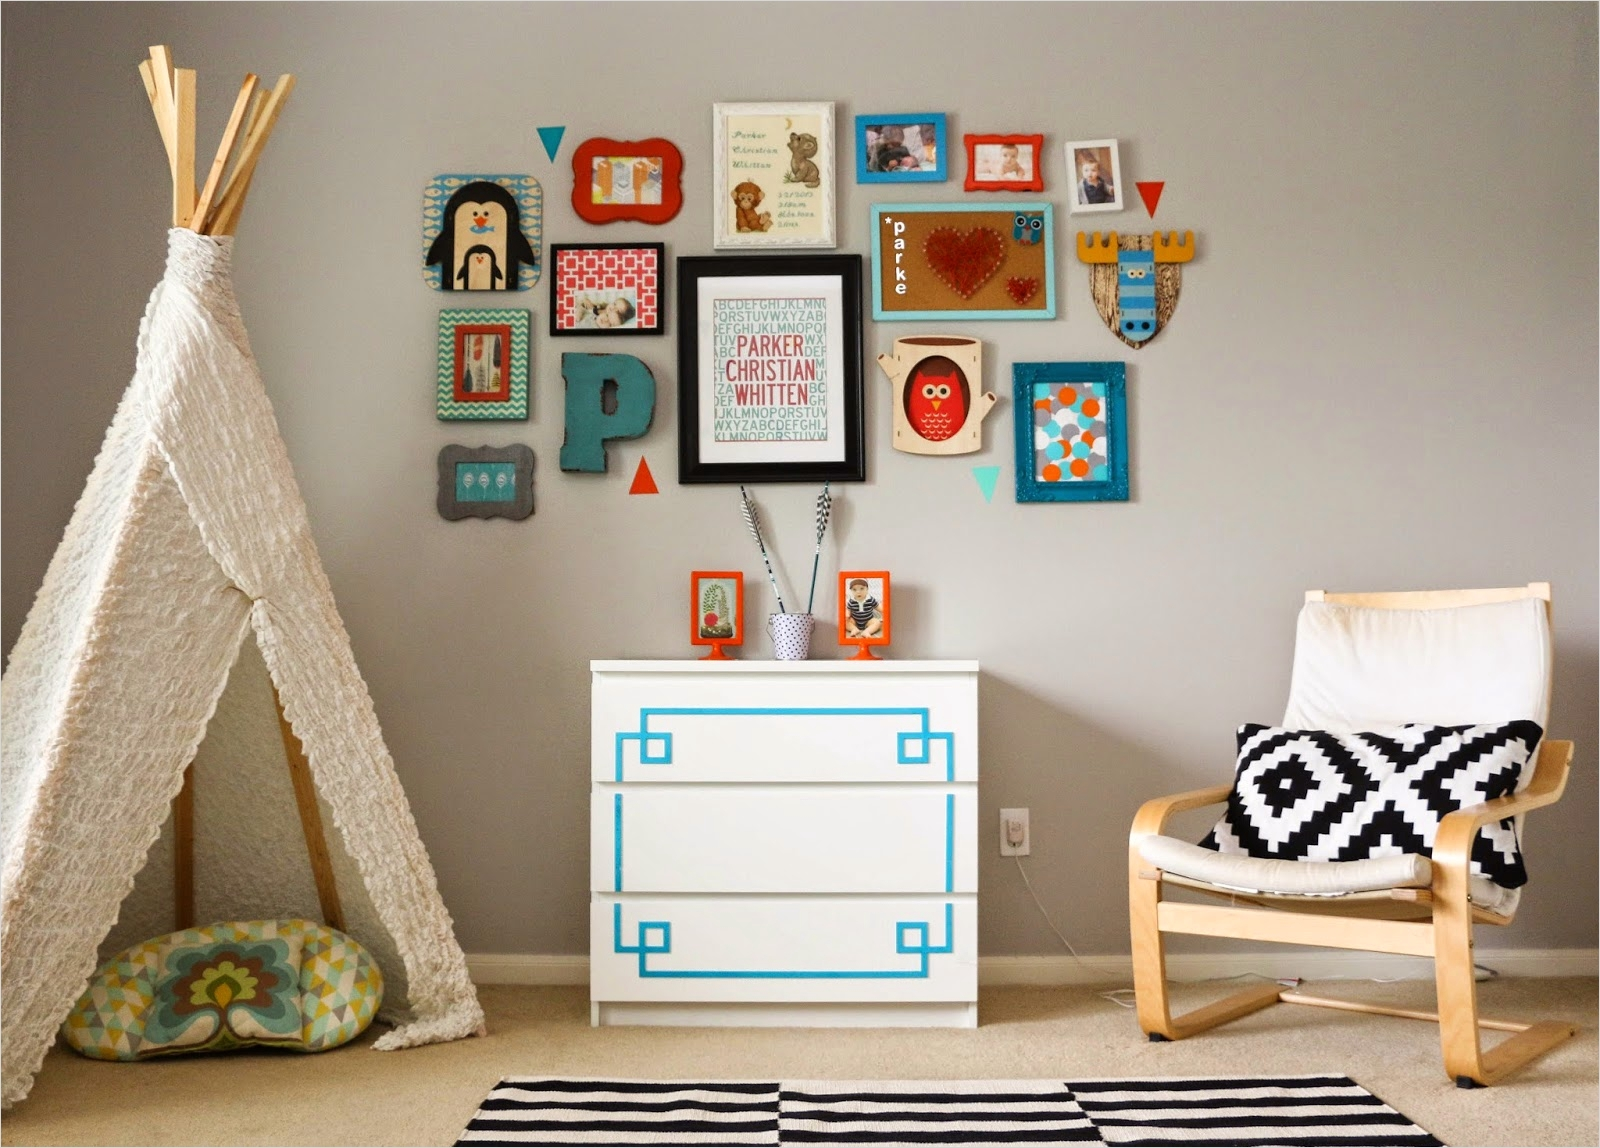 42 Amazing Diy Craft Room Gallery Wall 86 Gallery Wall Wednesday A Turquoise and orange Kids Room A Kailo Chic Life 9